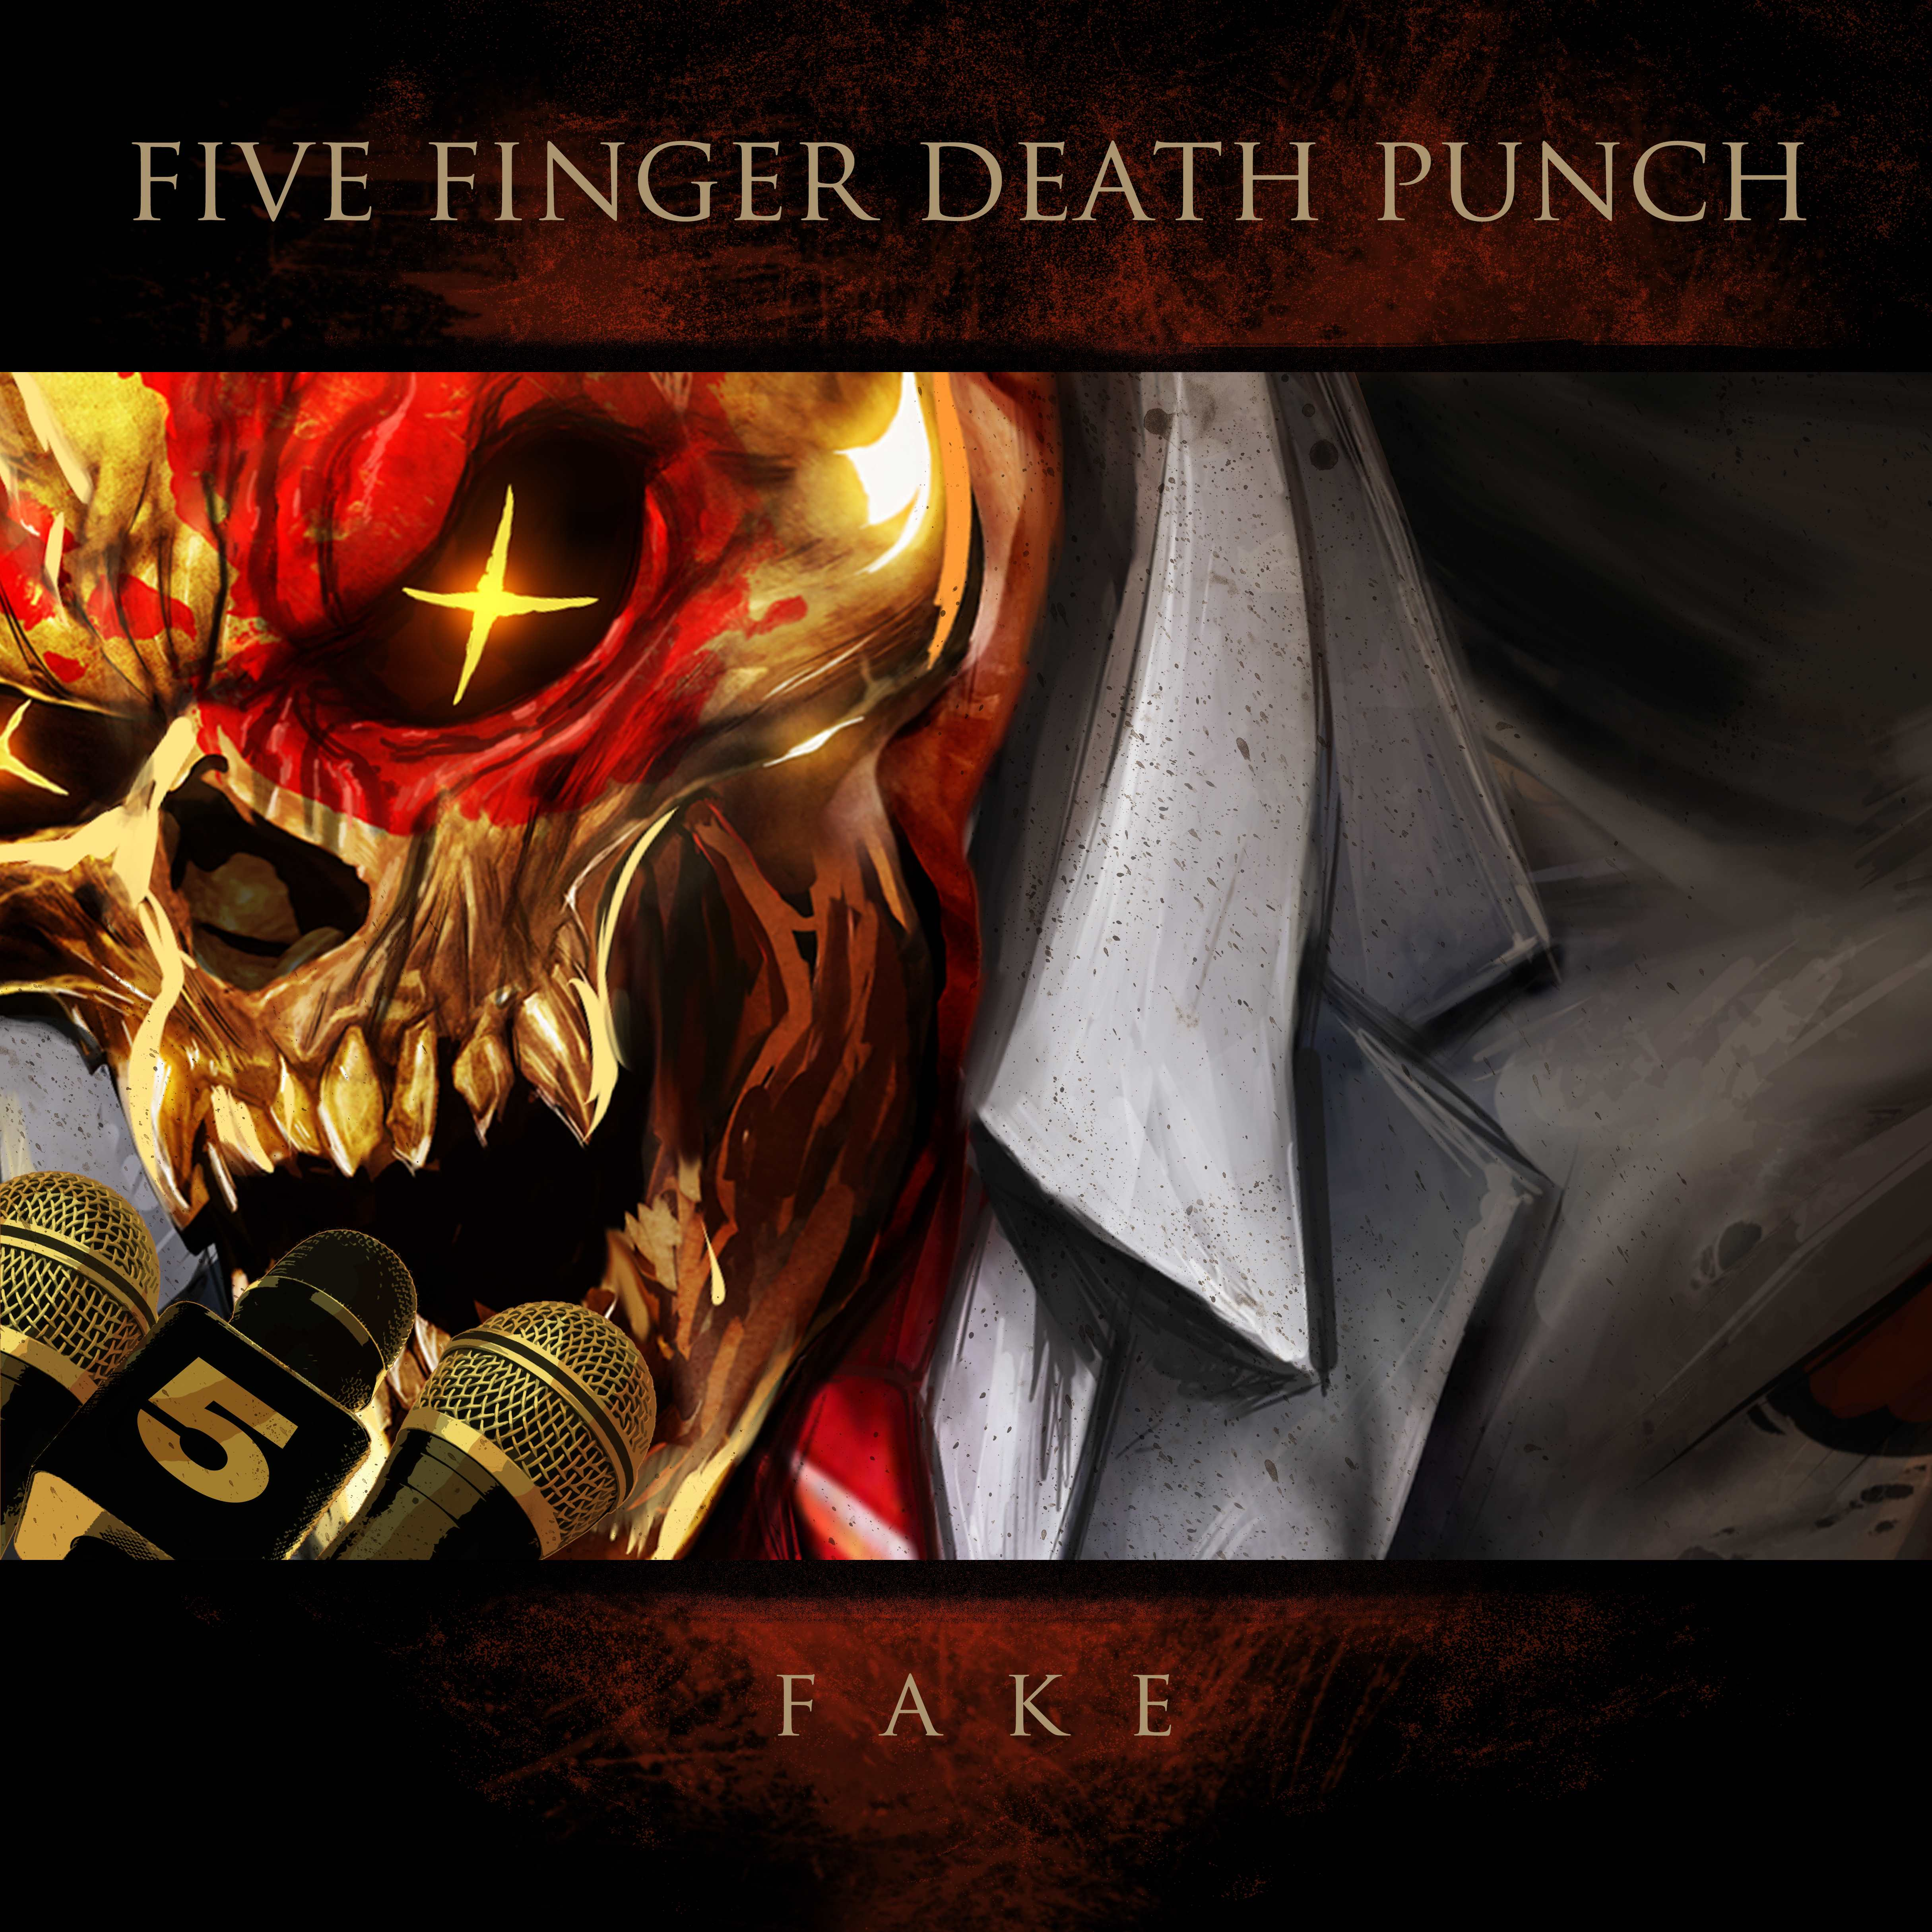 FIVE FINGER DEATH PUNCH reveal brand new song, Fake